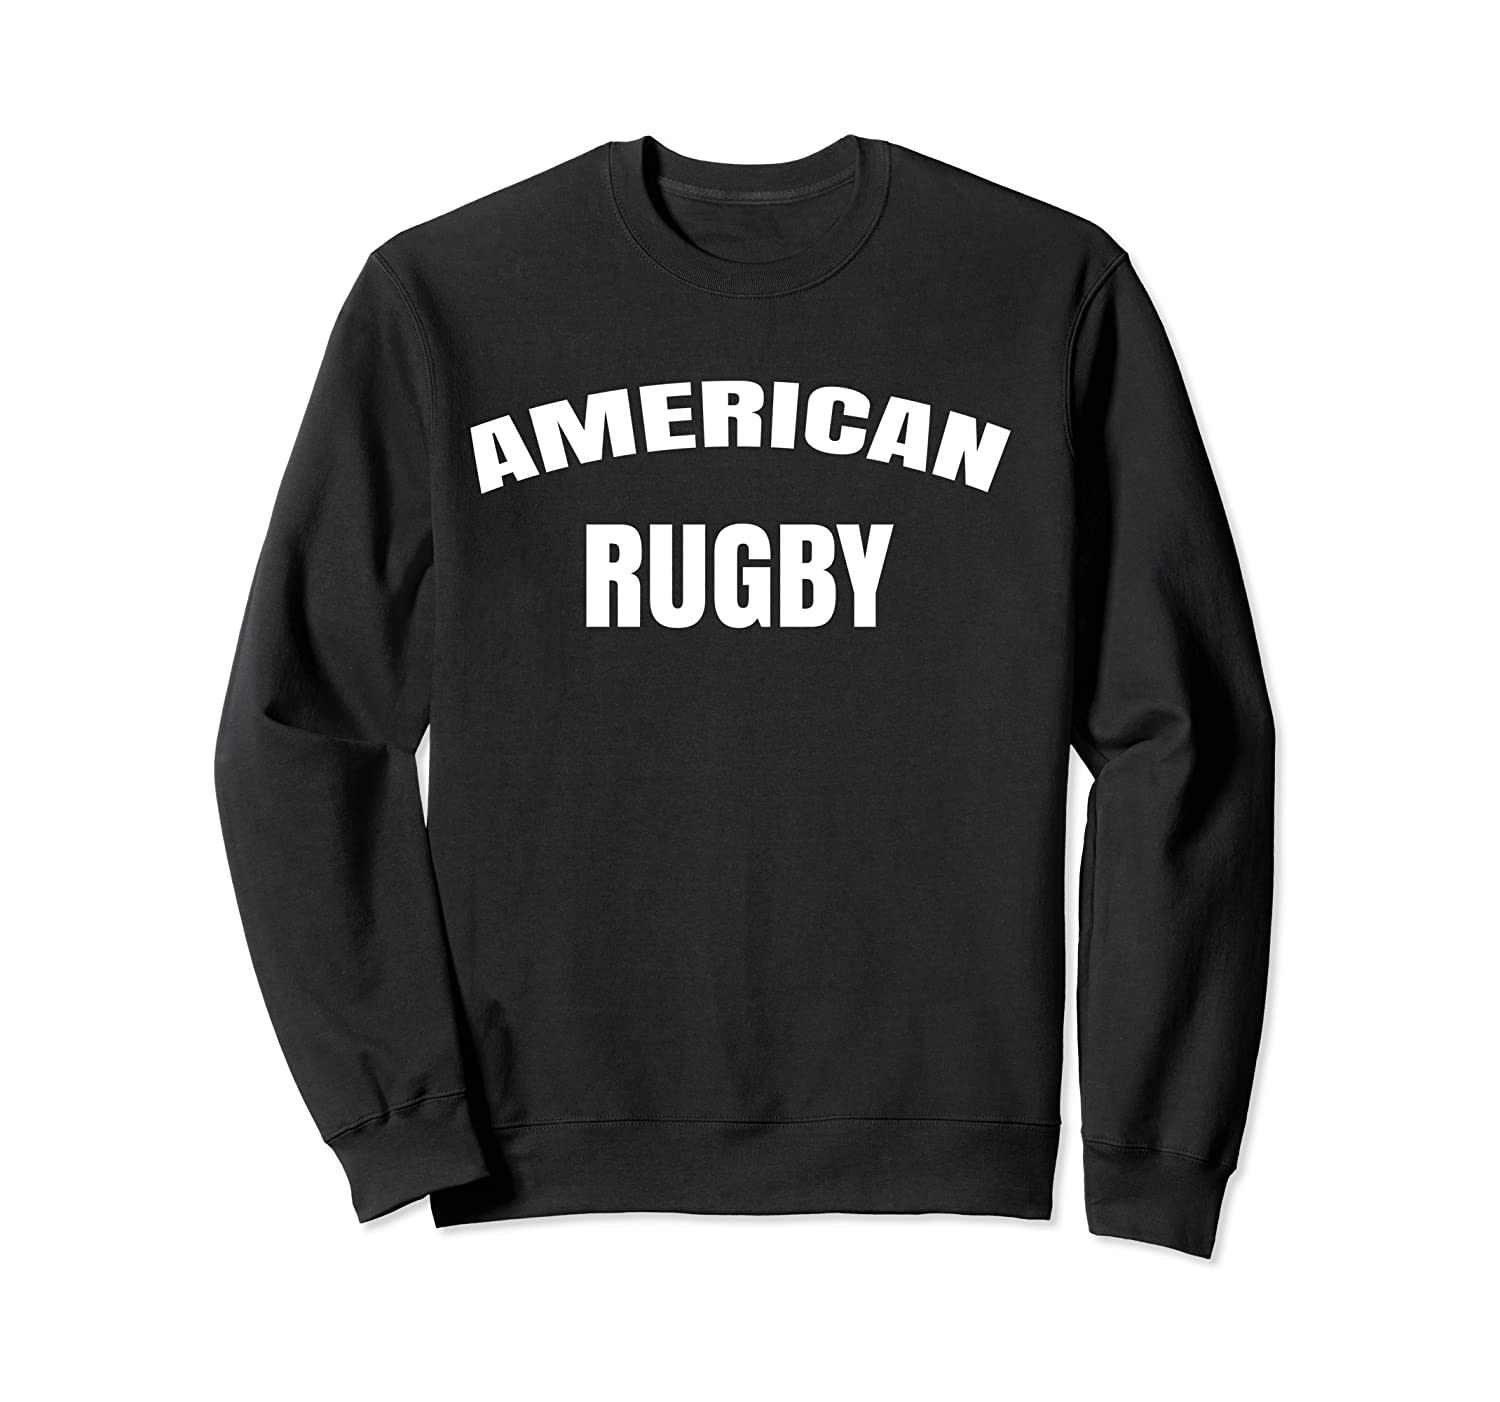 American Rugby T Shirt With Saying American Rugby T-shirt Crewneck Sweater